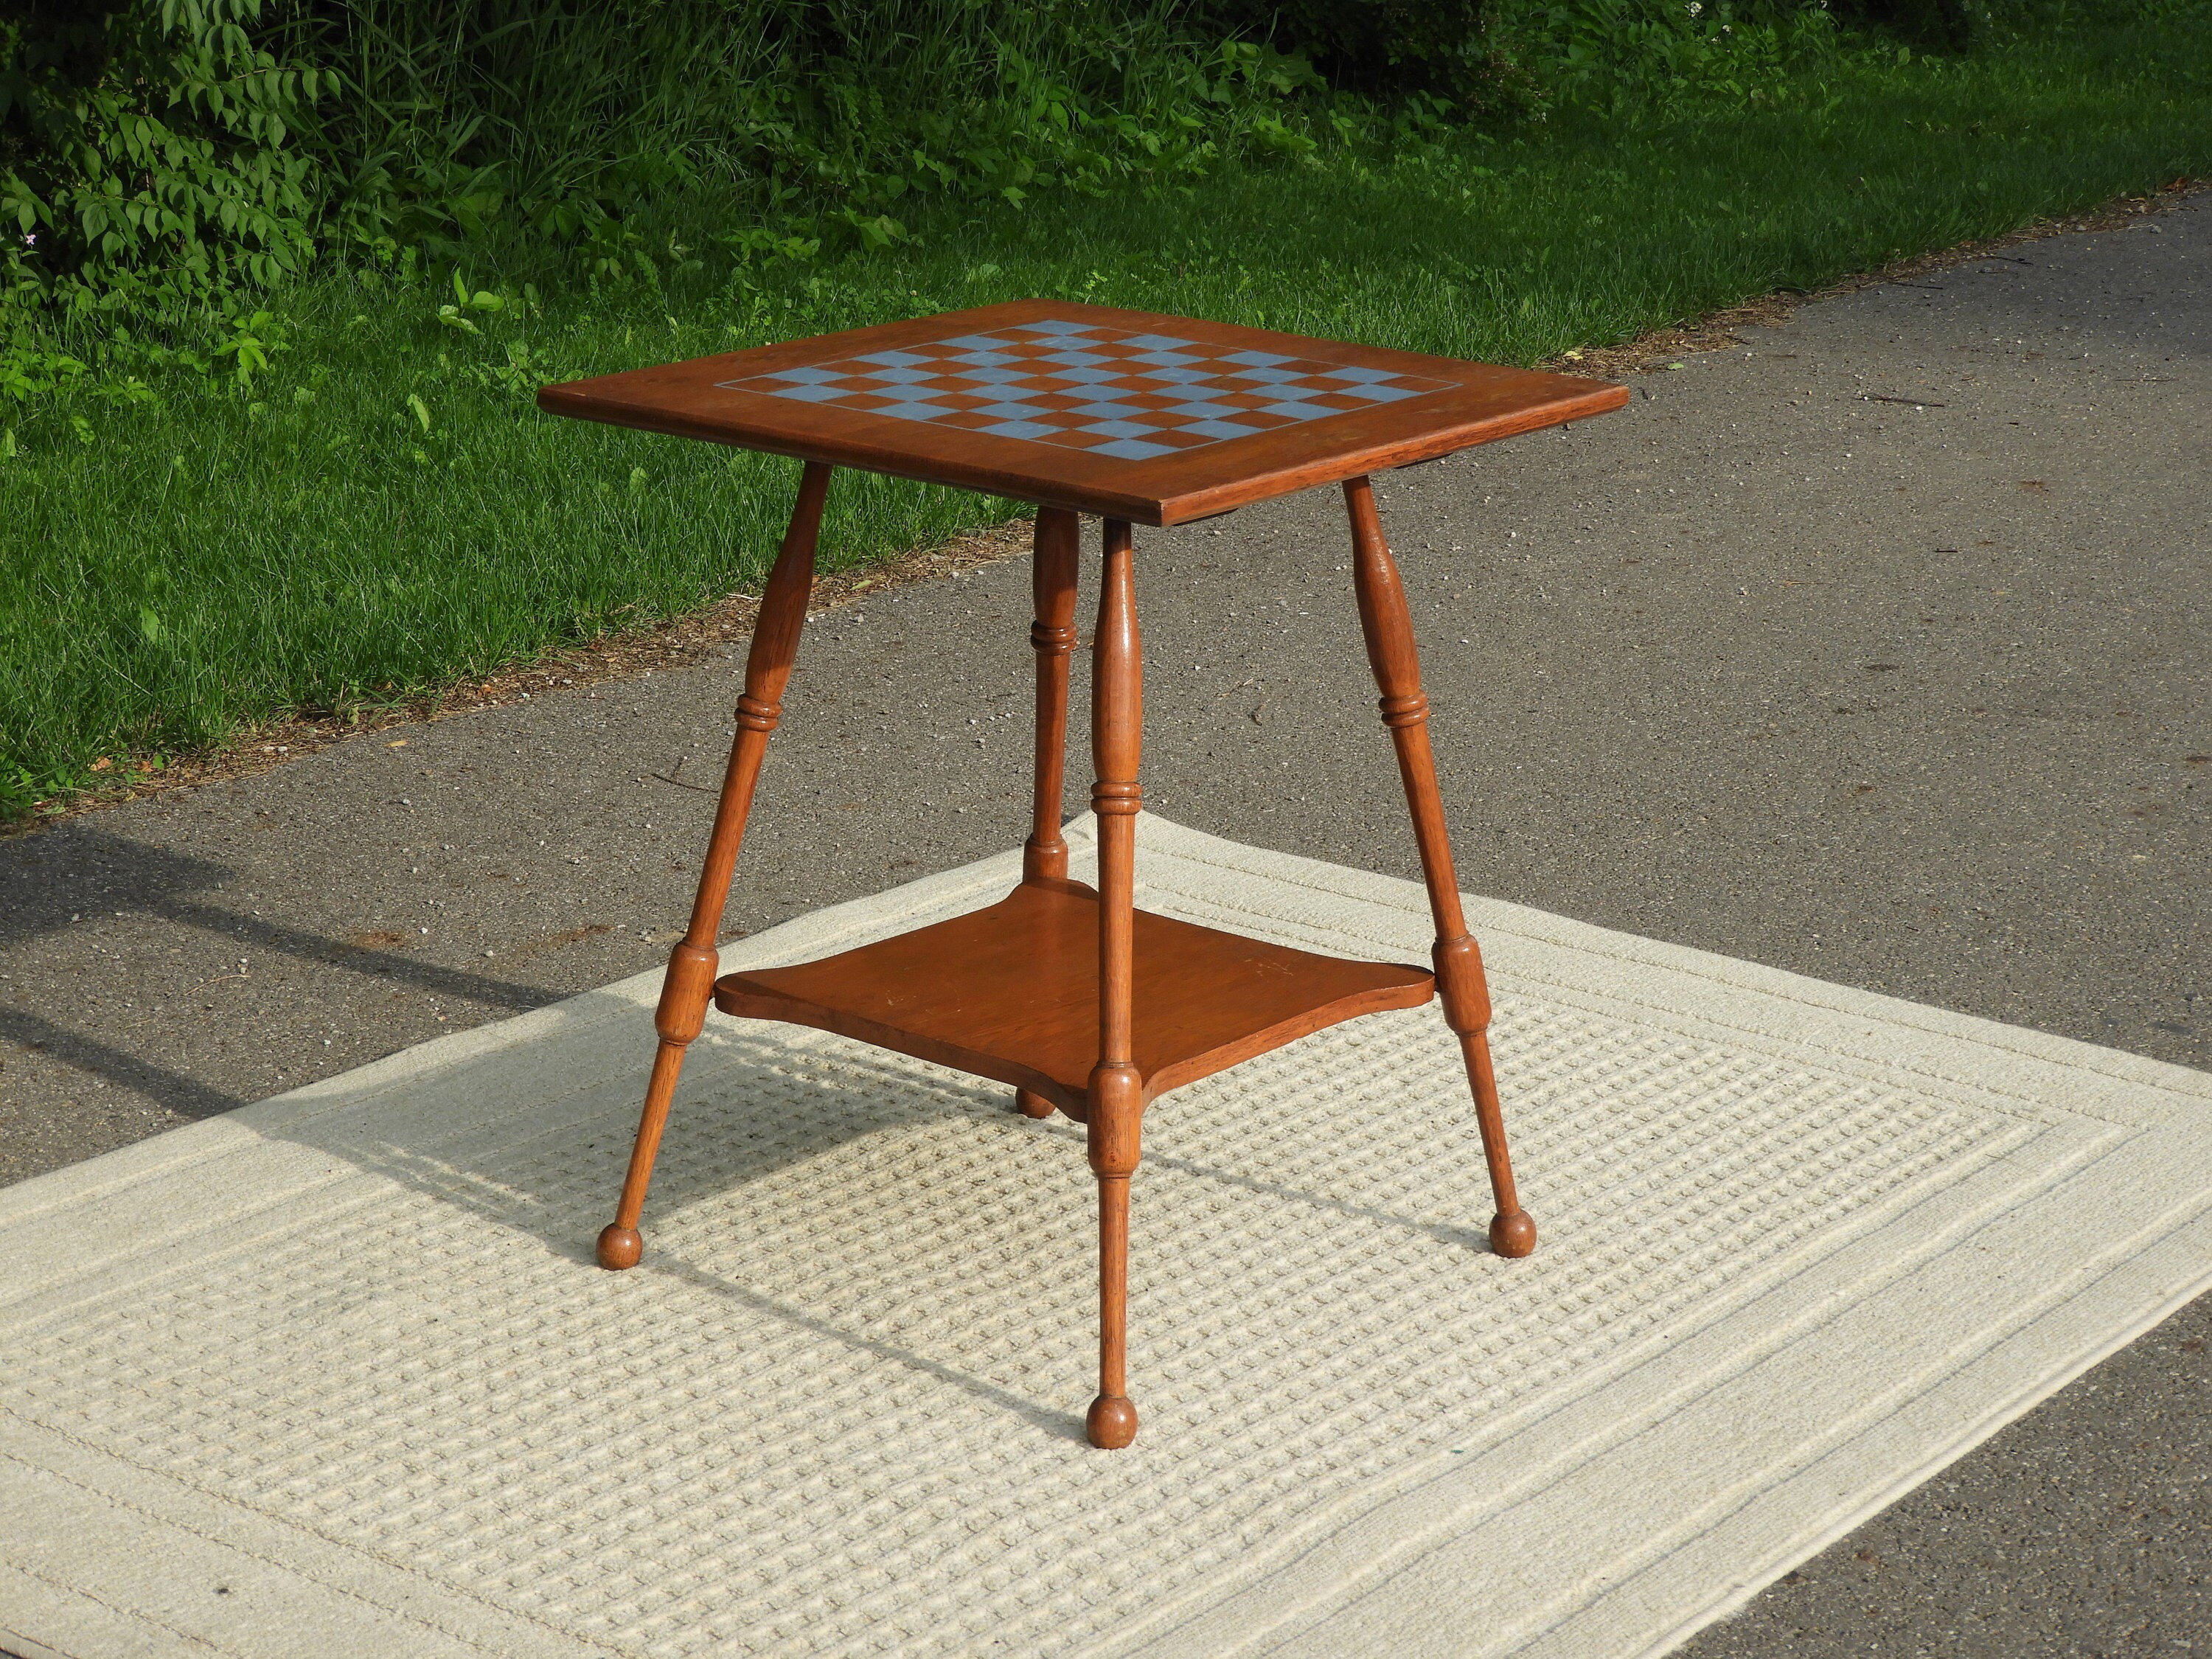 vintage checkerboard table wooden game decorative gold brown fullxfull accent side parlor wood radio stand mid century furniture coral color decor round white metal outdoor living